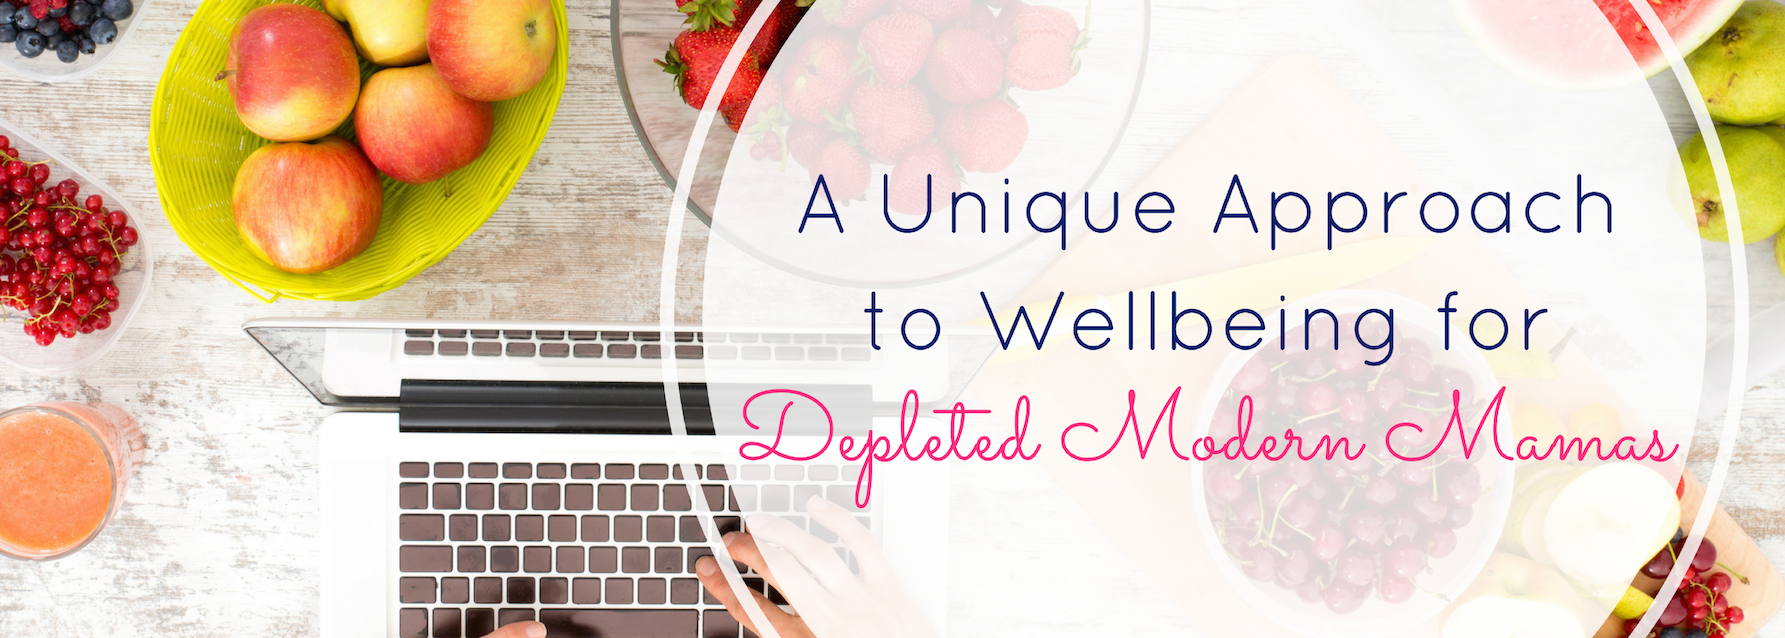 Home Page Header_Wellbeing